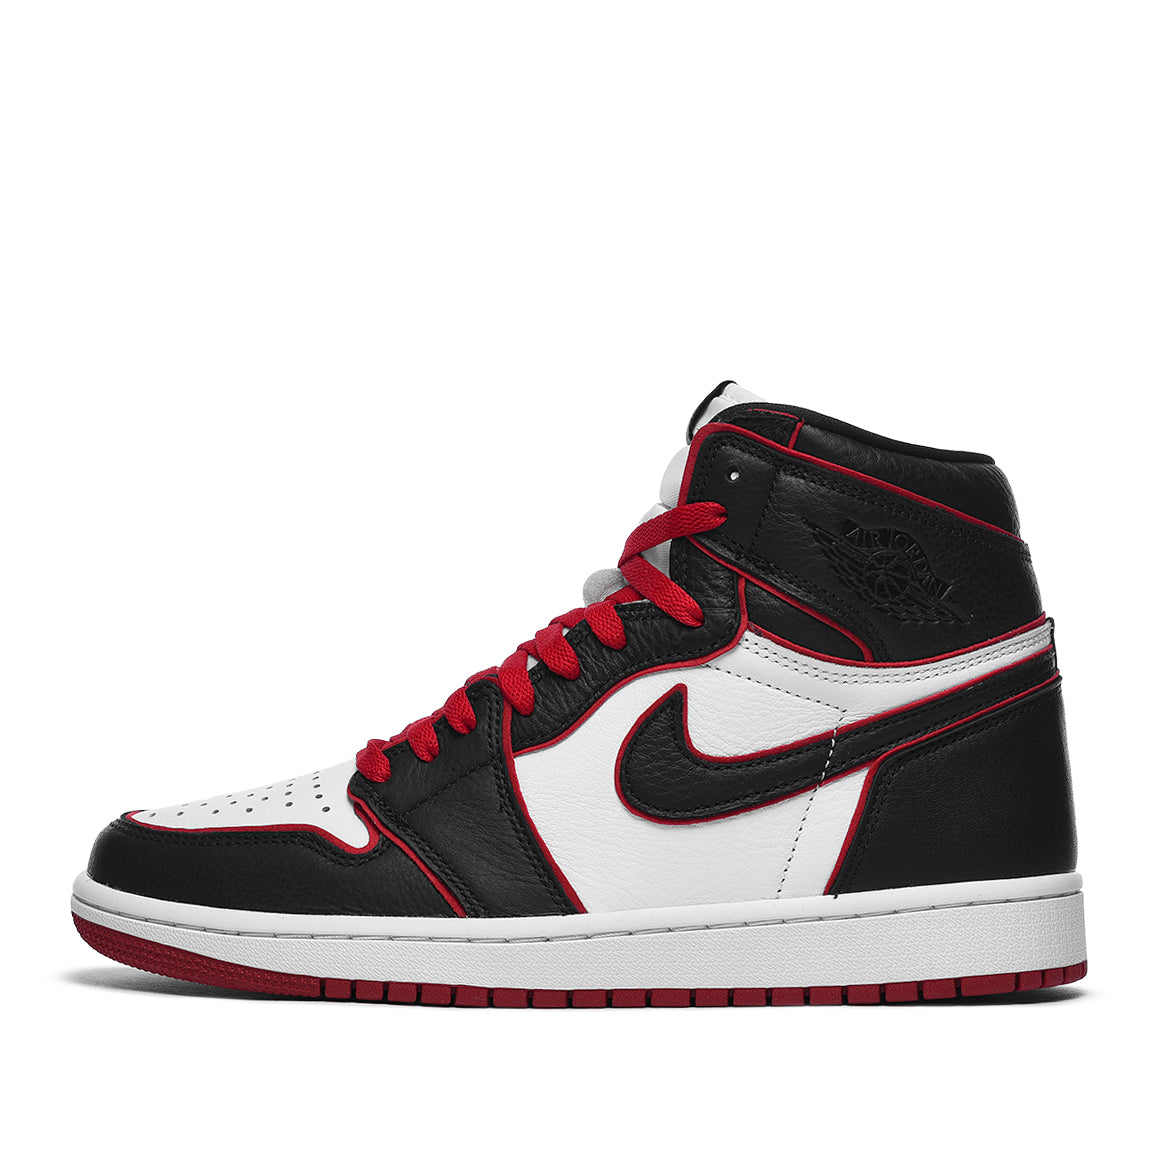 "AIR JORDAN 1 RETRO HIGH OG ""BLOODLINE"""